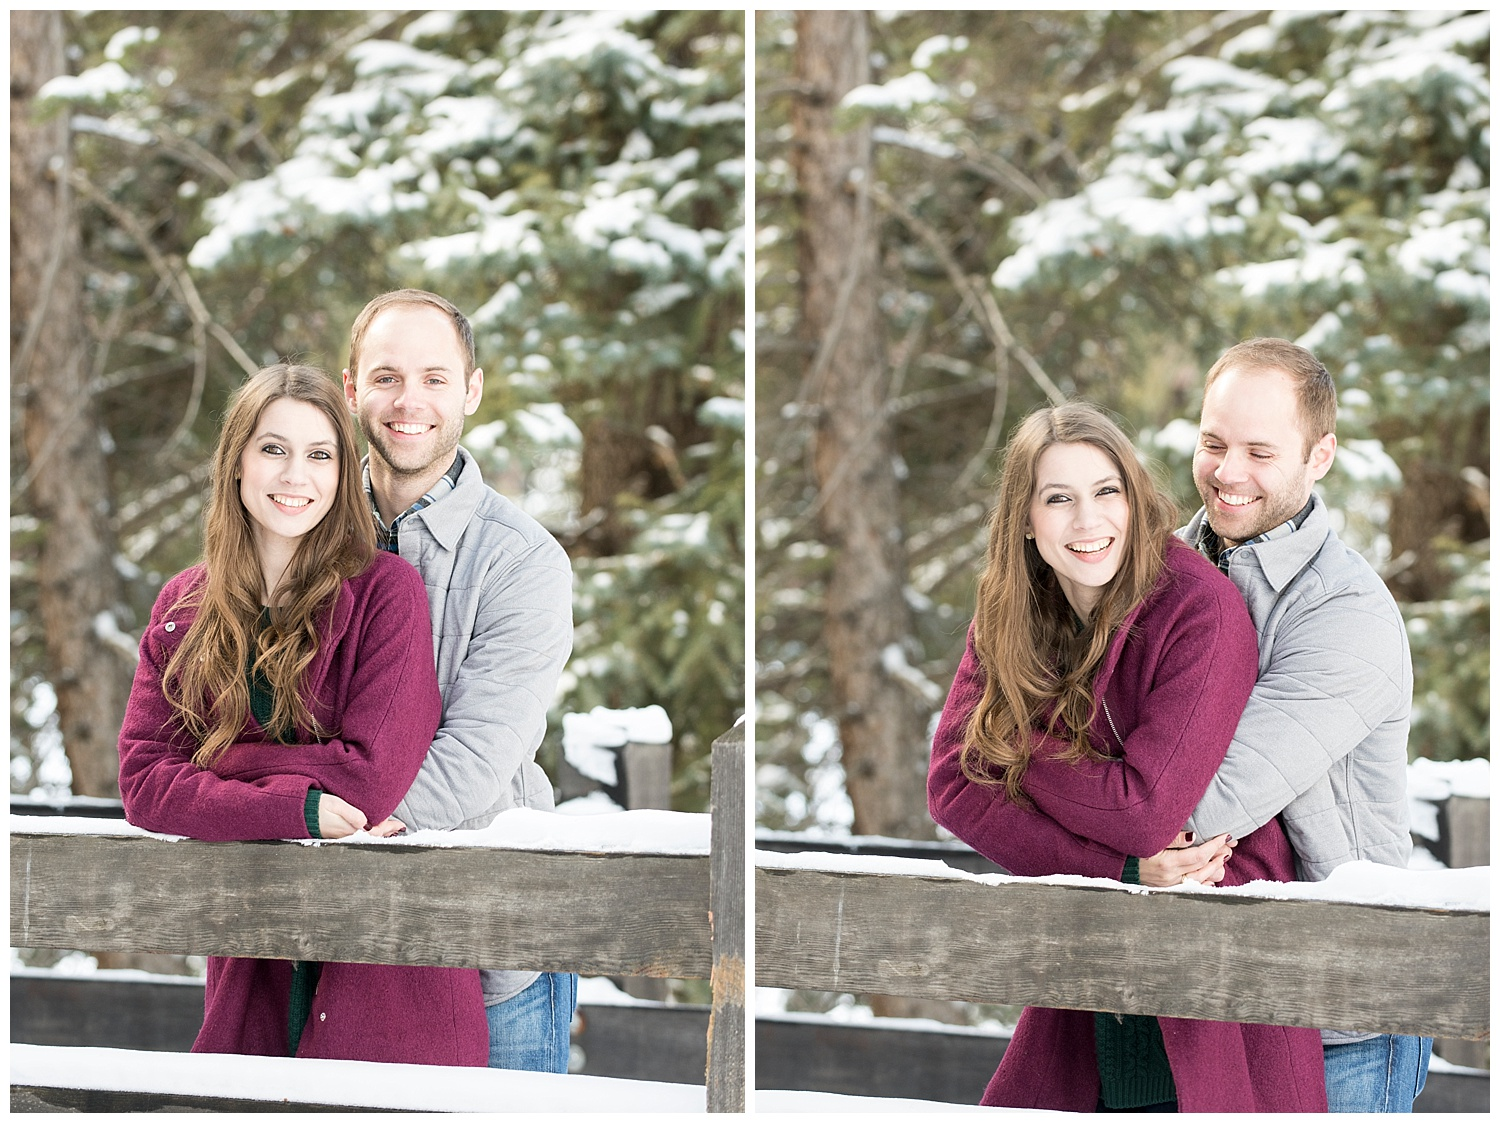 Breckenridge_Colorado_Engagement_Photographer_Ski_Resort_Mountain_Town_Photography_Engagement_Photos_003.jpg